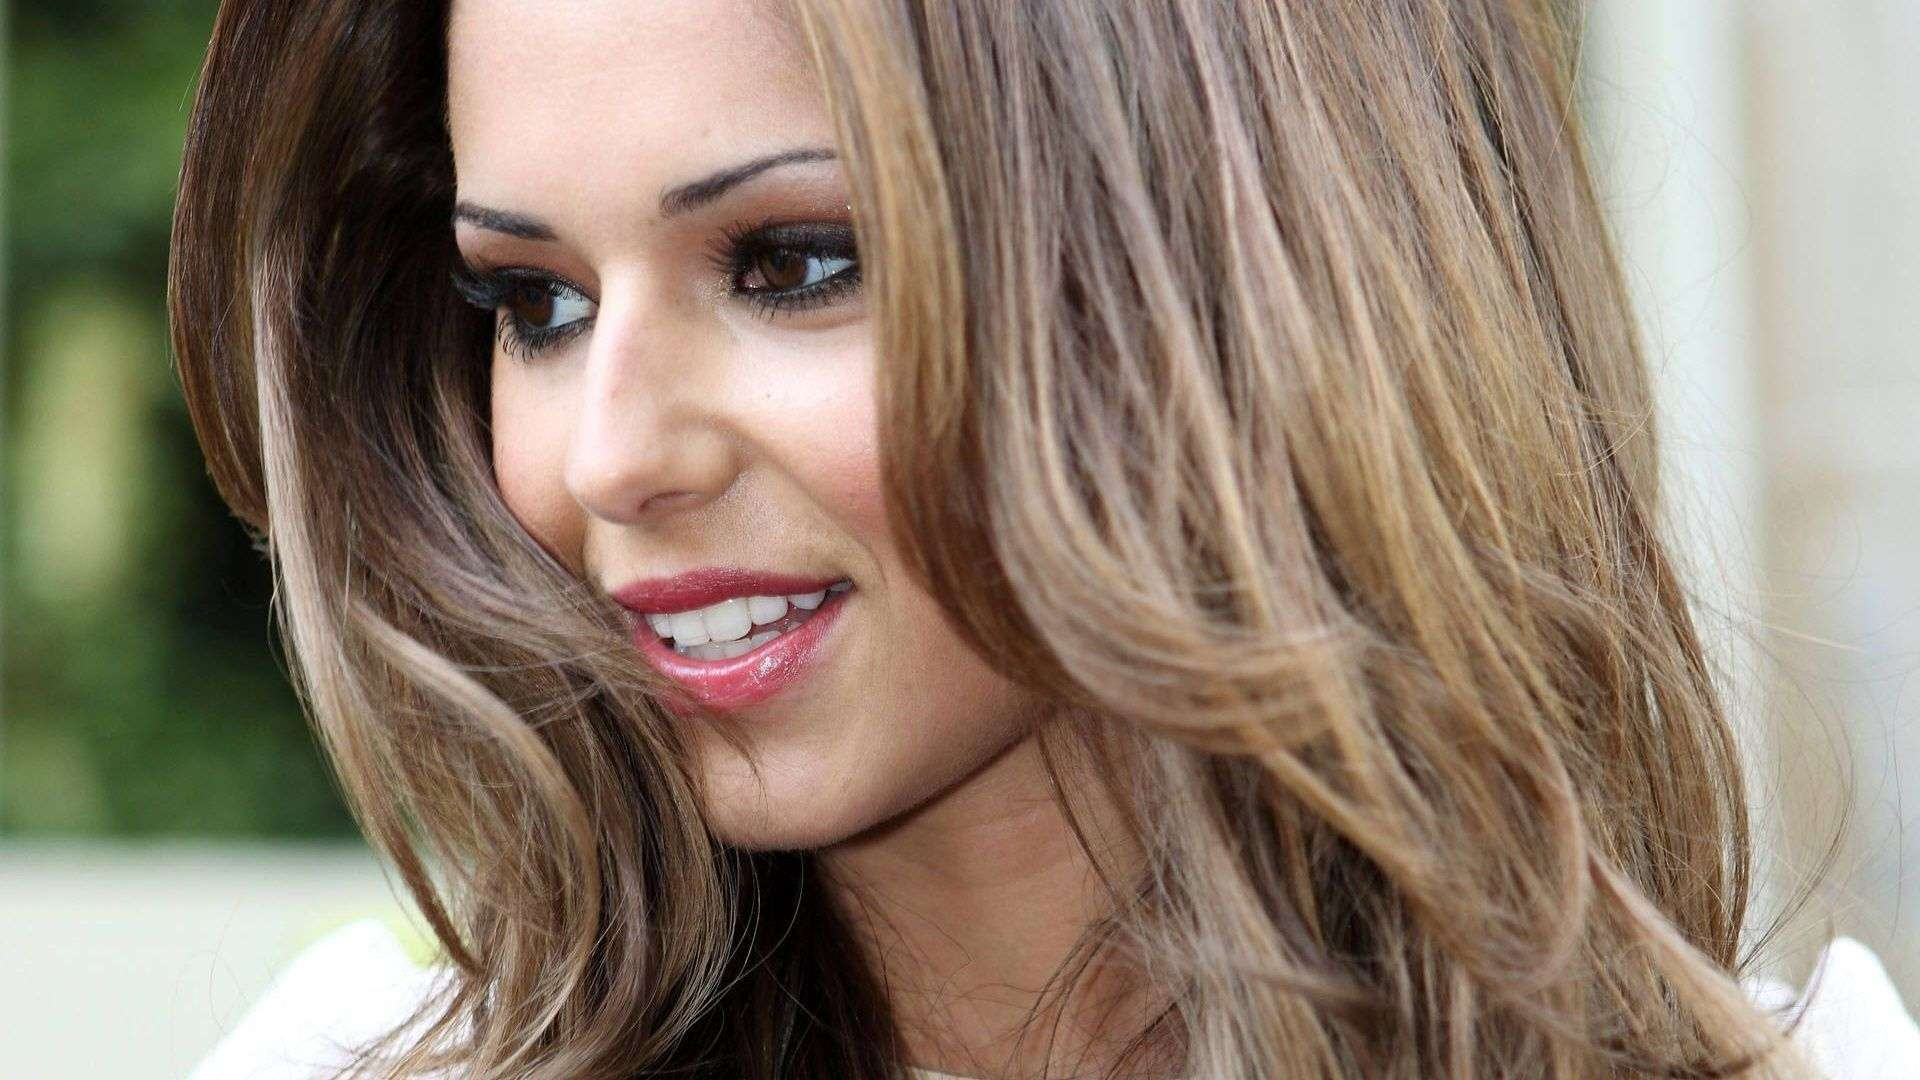 Cheryl Cole Wallpapers Images Photos Pictures Backgrounds Cheryl Cole